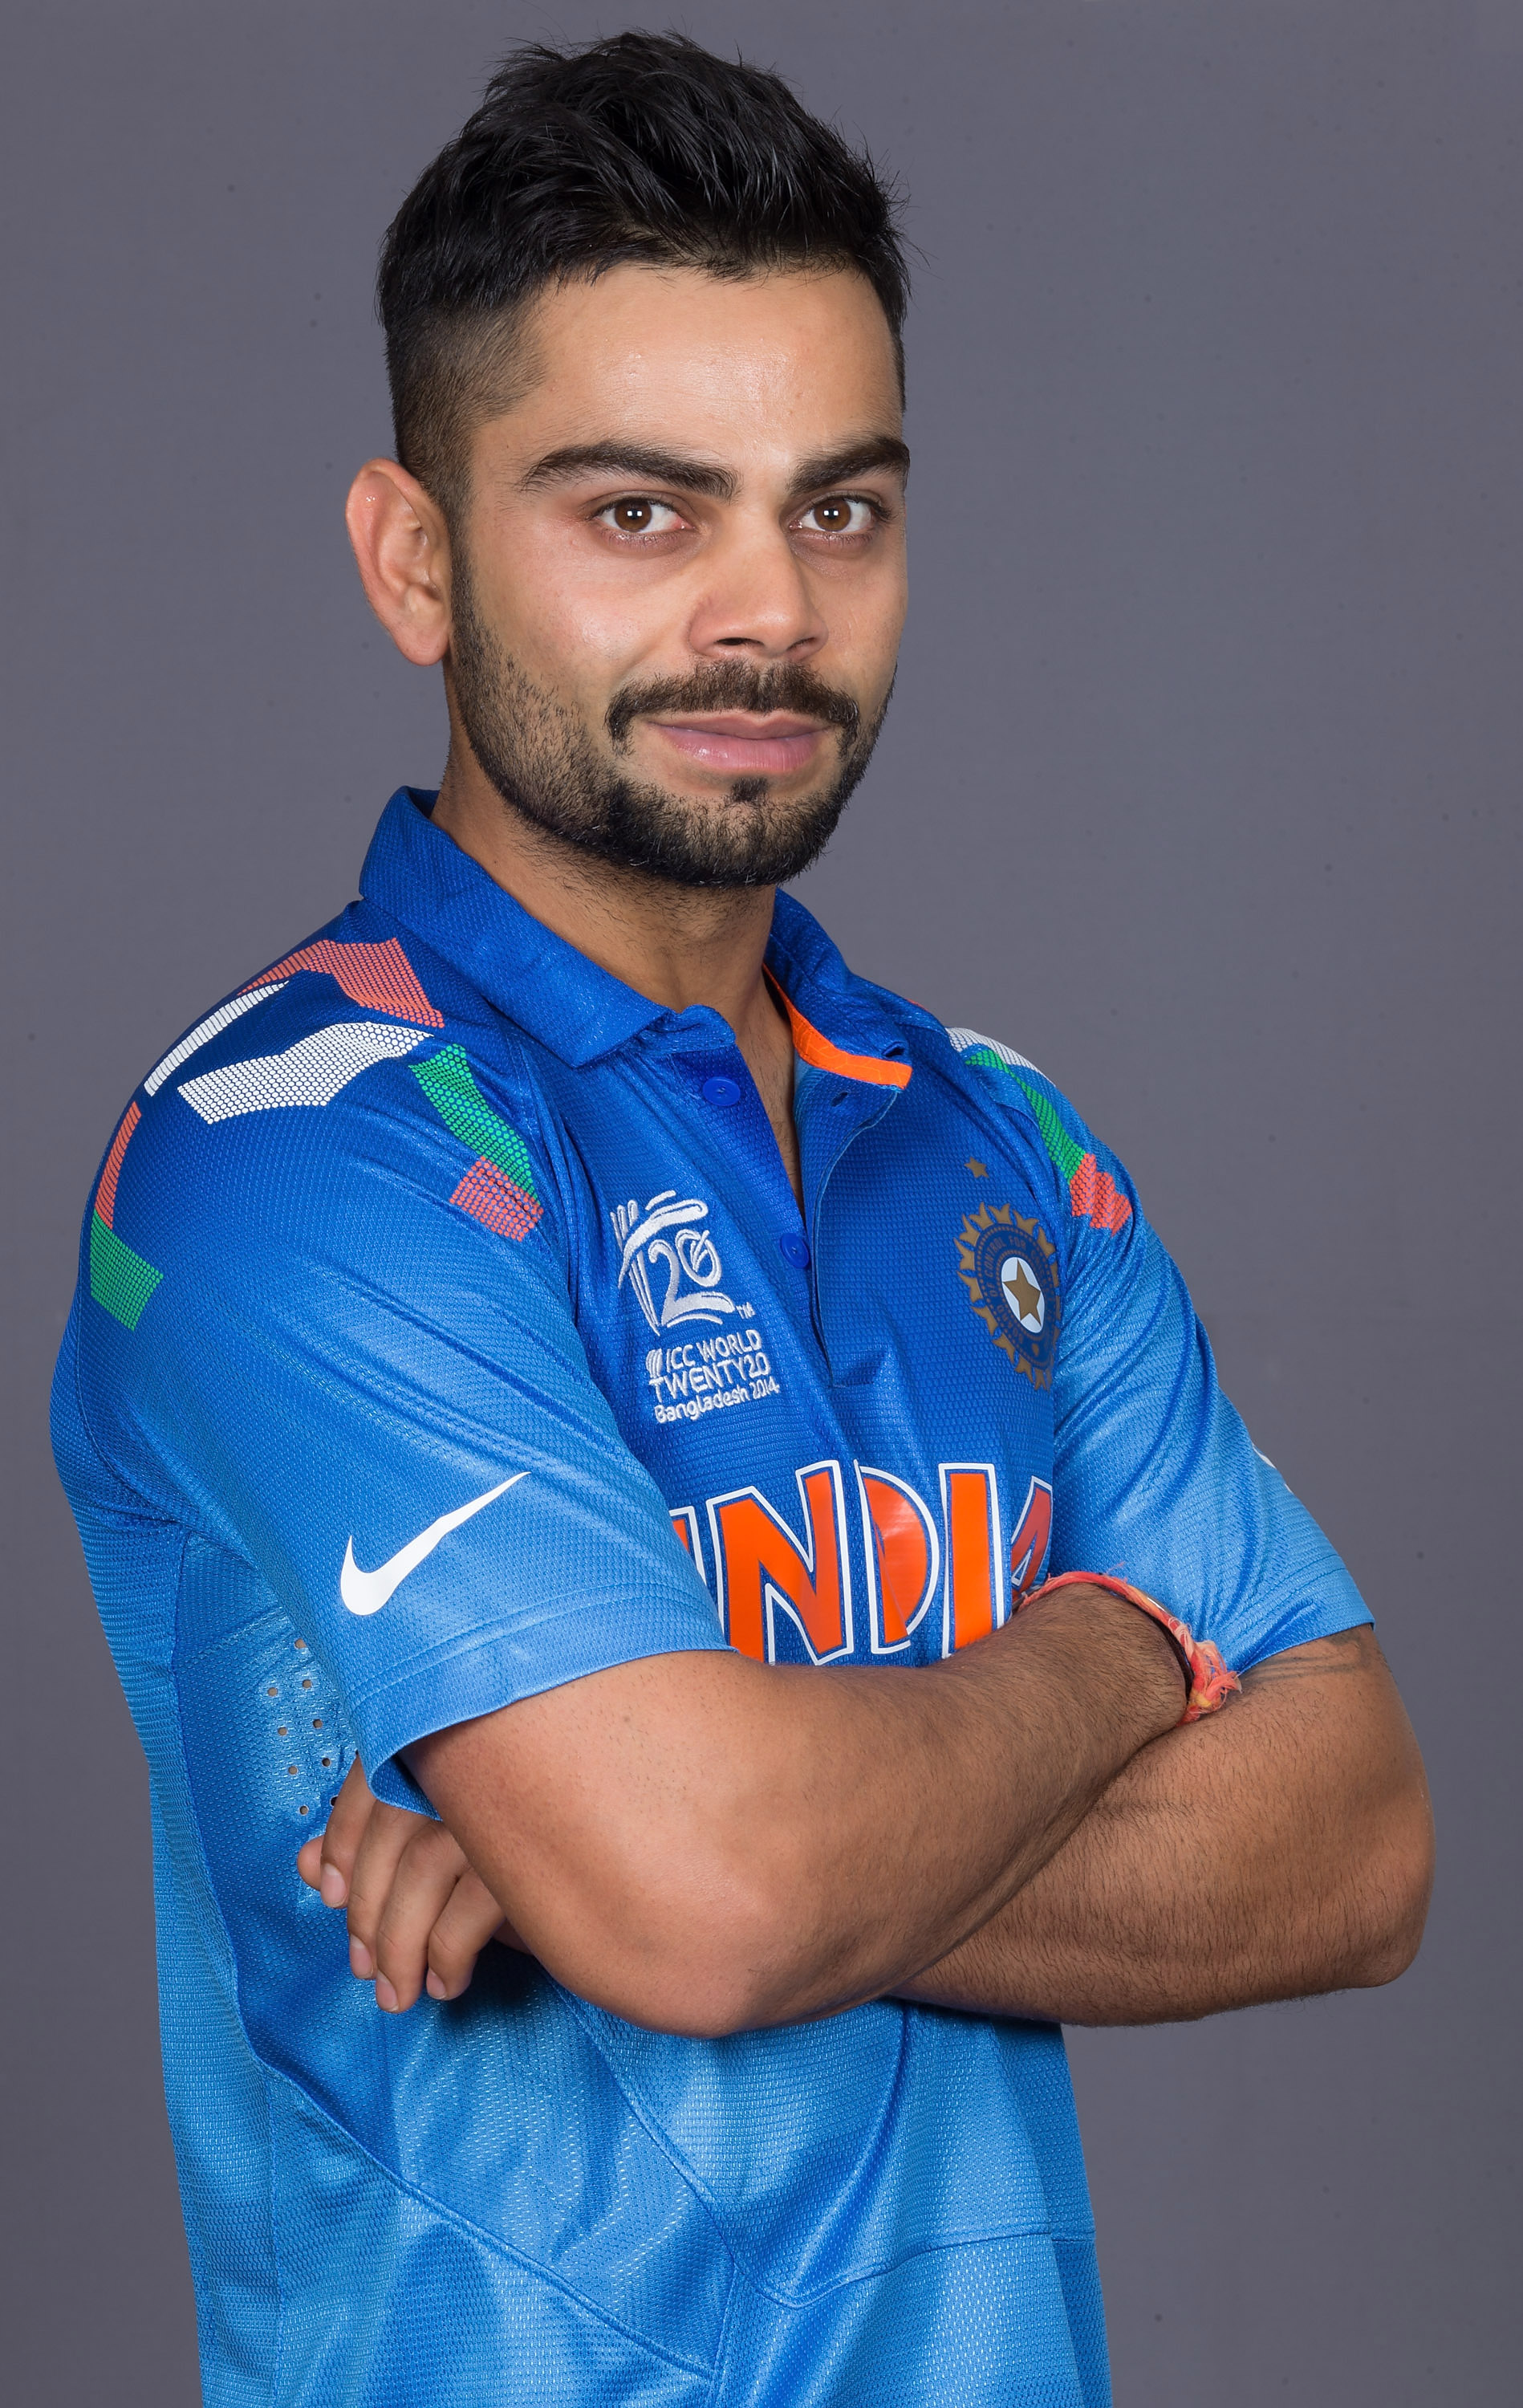 DHAKA, BANGLADESH - MARCH 15:  Virat Kohli of India at the headshot session at the Pan Pacific Hotel, Dhaka in the lead up to the ICC World Twenty20 Bangladesh 2014 on March 15, 2014 in Dhaka, Bangladesh. (Photo by Graham Crouch-IDI/IDI via Getty Images)